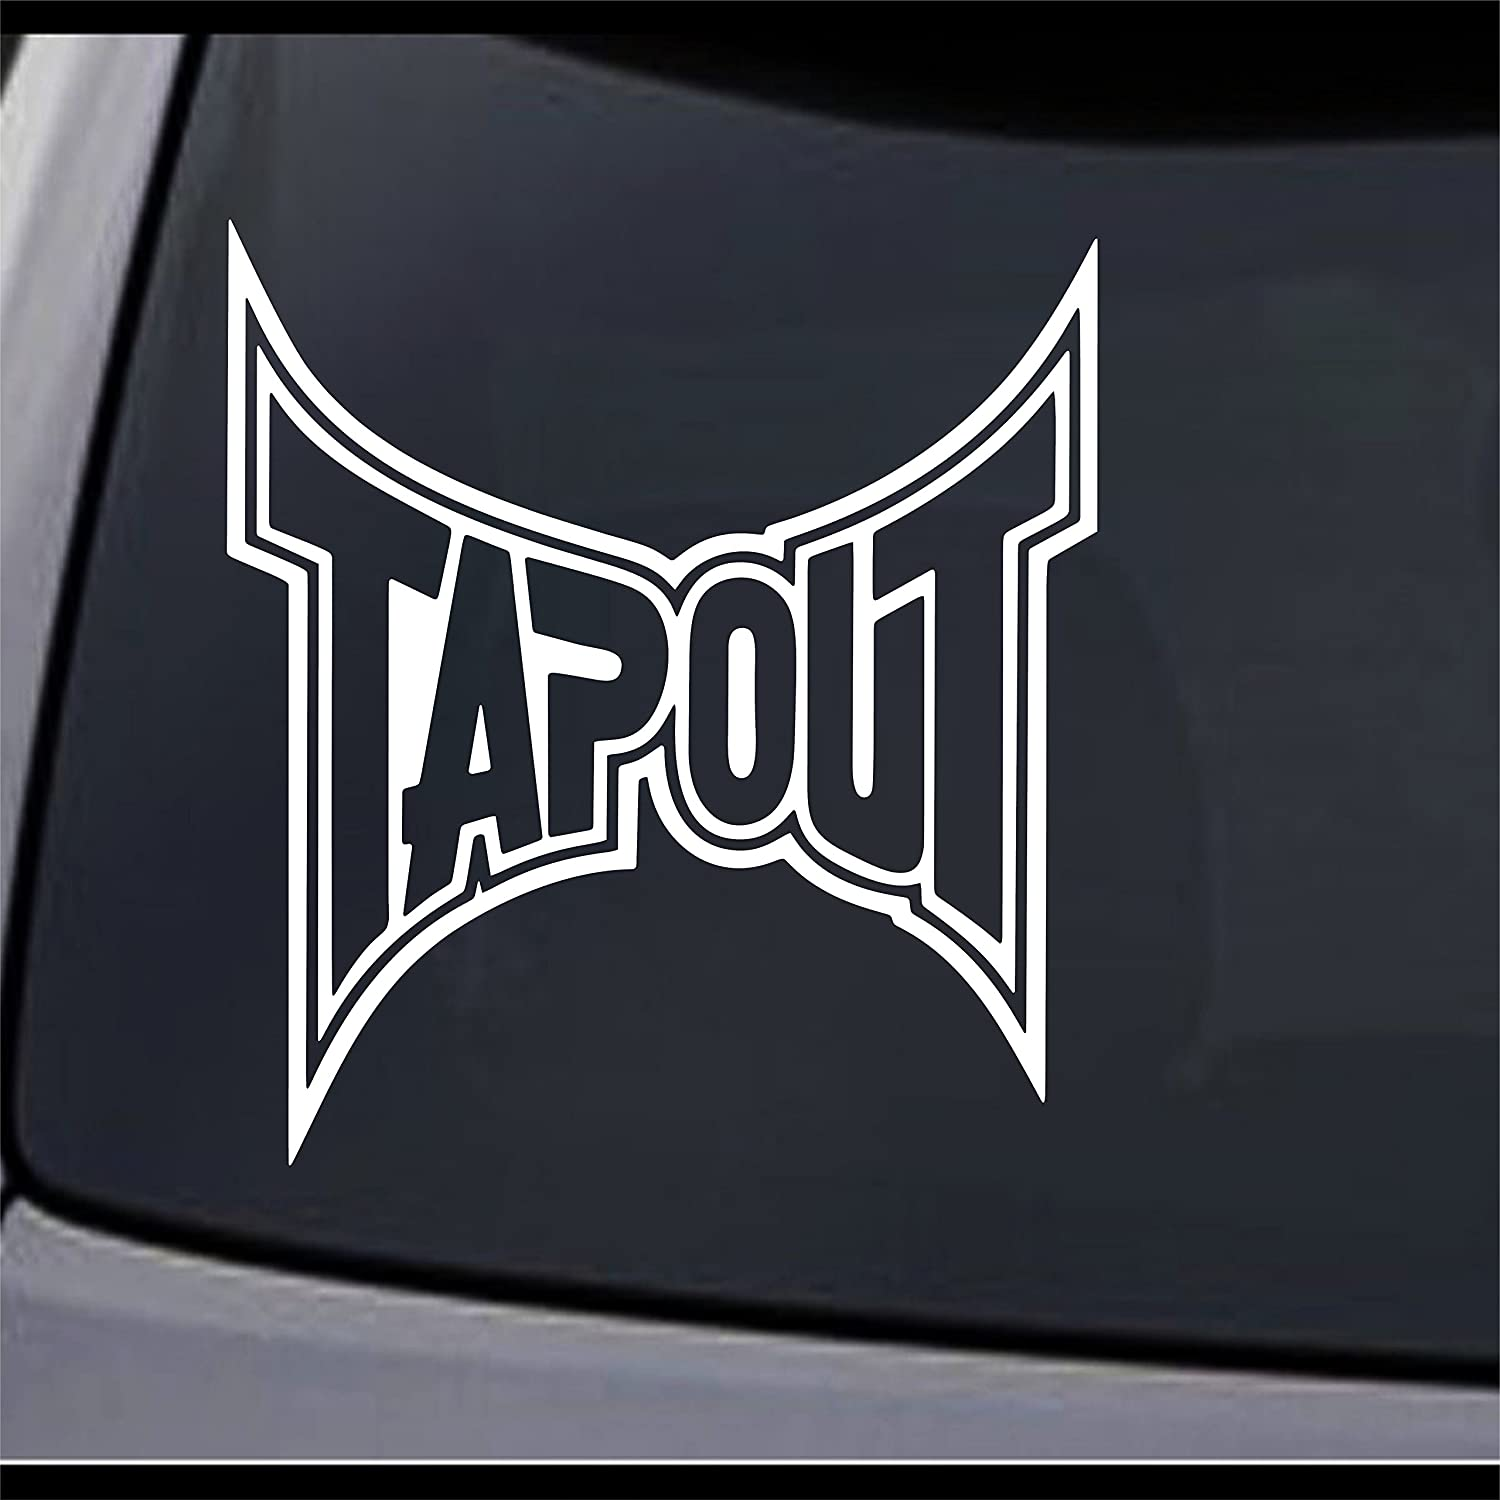 Tapout 4 to 24 One Color Vinyl Decal Sticker